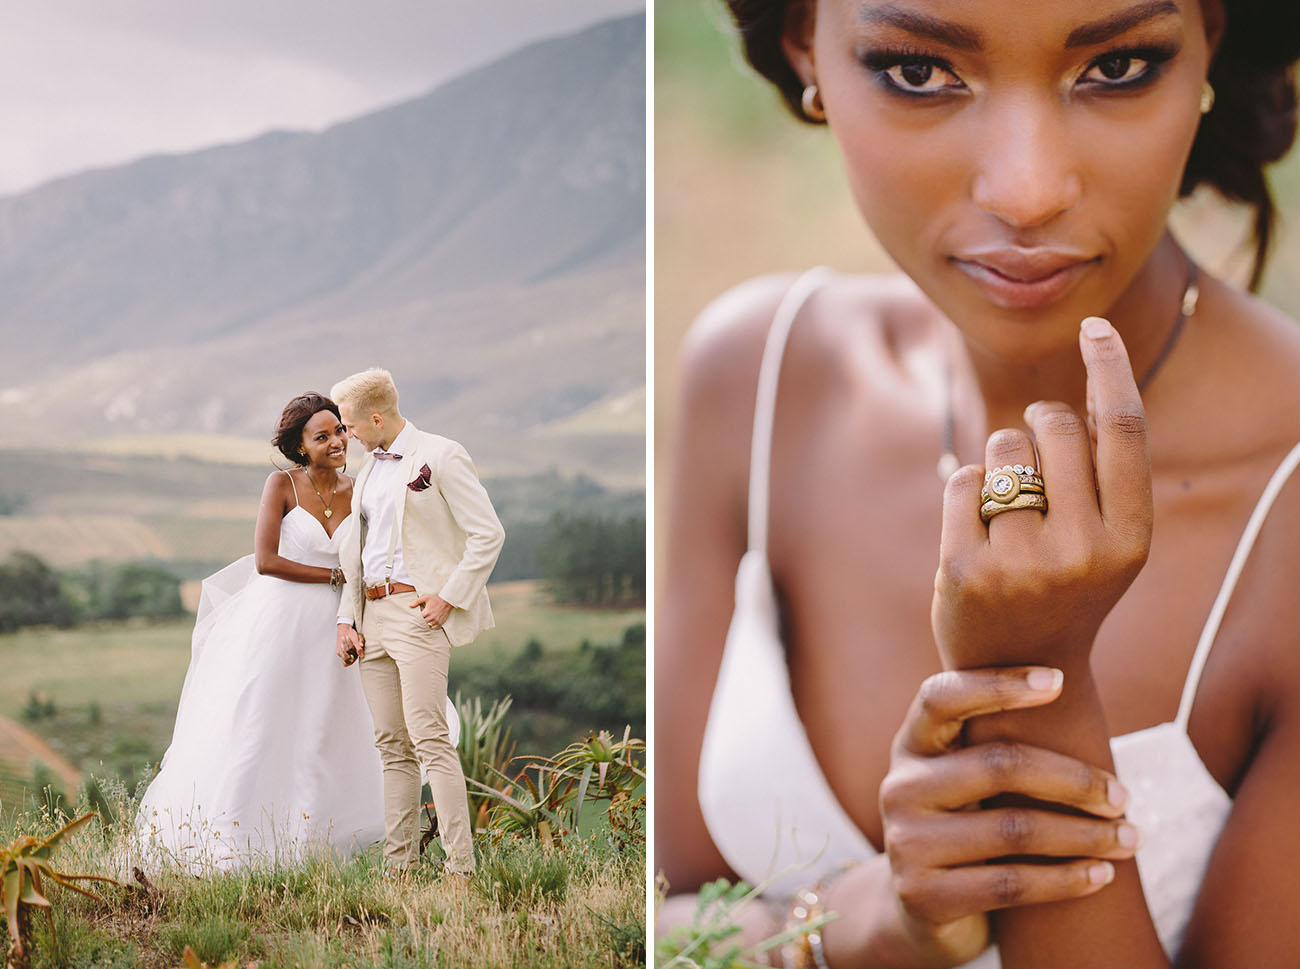 Look at that ring, it was made for the shoot to add African influence to the look